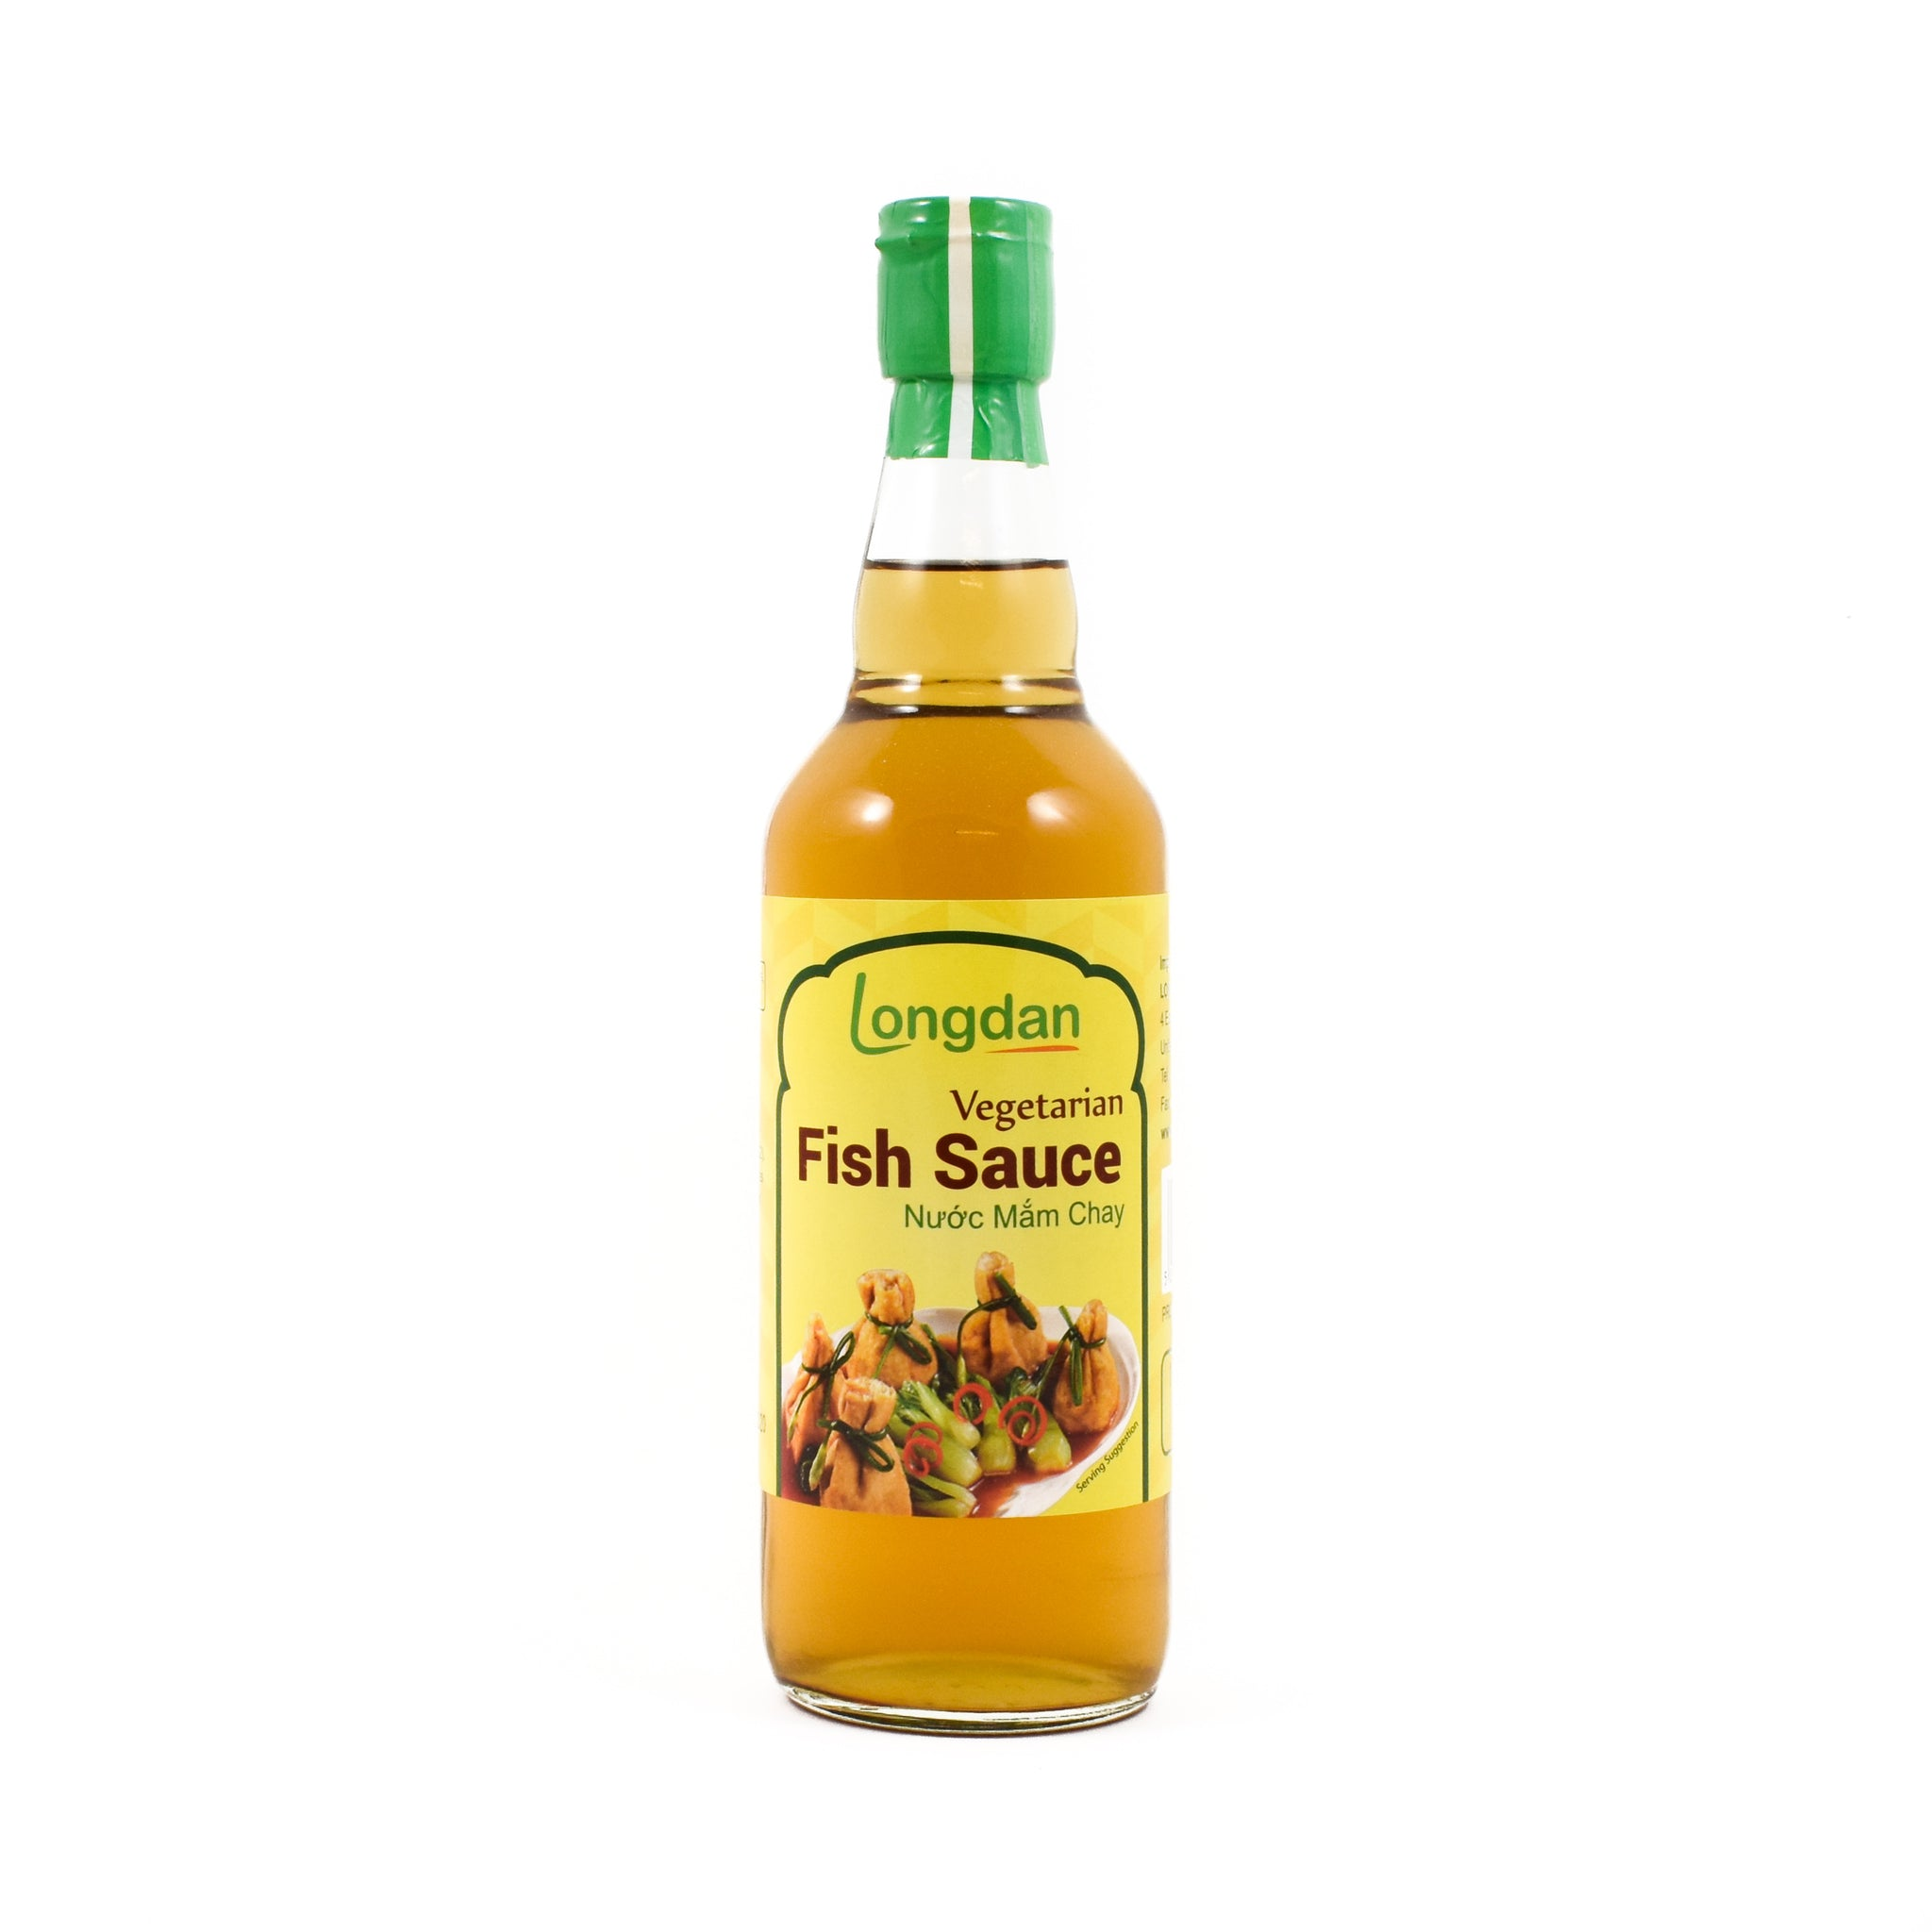 Longdan Vegetarian Fish Sauce - Nuoc Mam Chay 500ml Ingredients Sauces & Condiments Asian Sauces & Condiments Southeast Asian Food